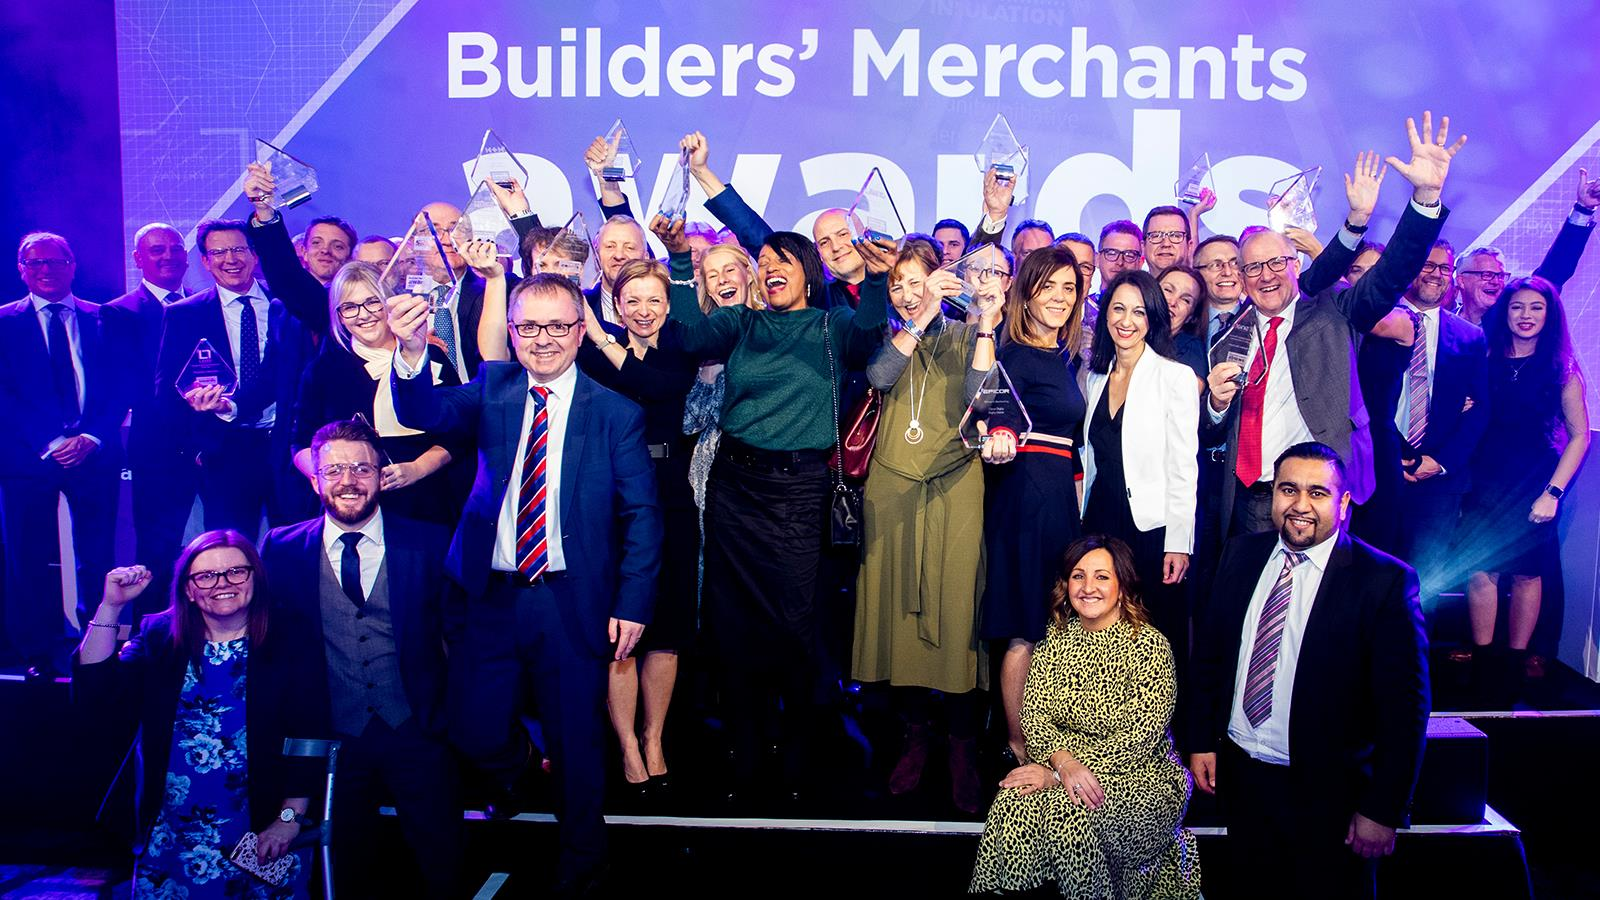 Builders' Merchants Awards 2019 image